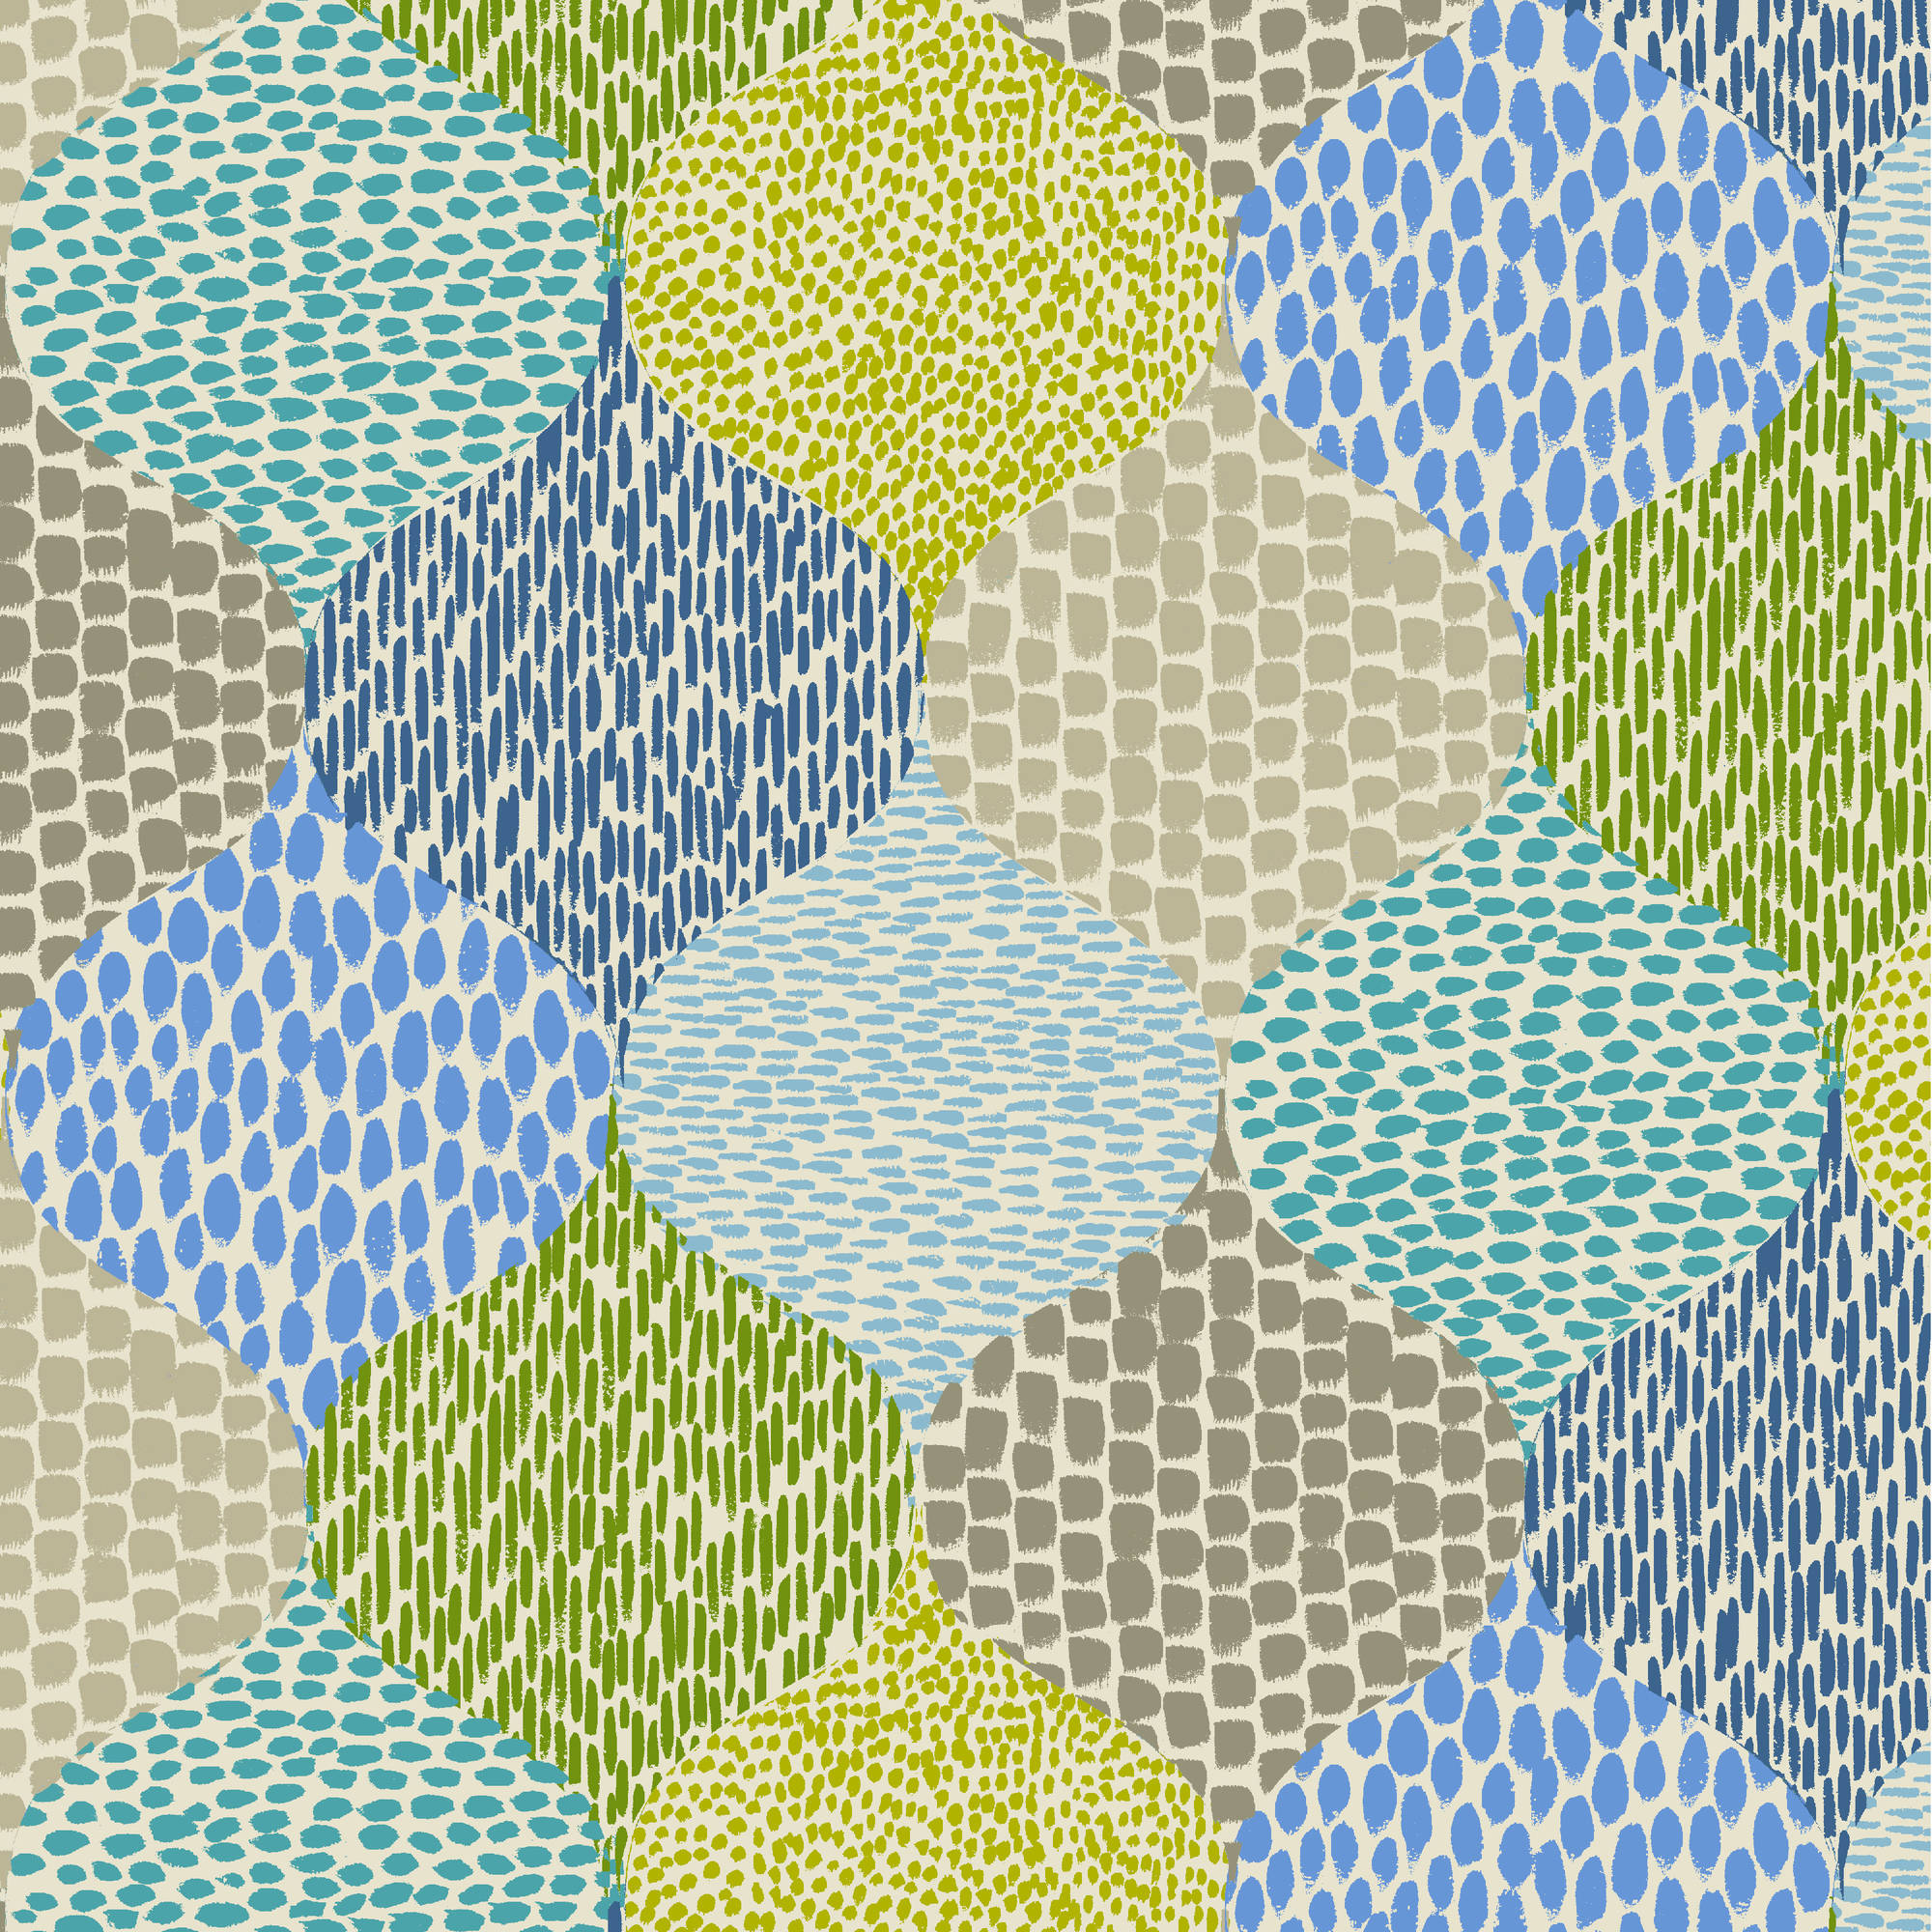 "Waverly Inspirations Cotton Duck 45"" Teardrop Azul Fabric, per Yard"